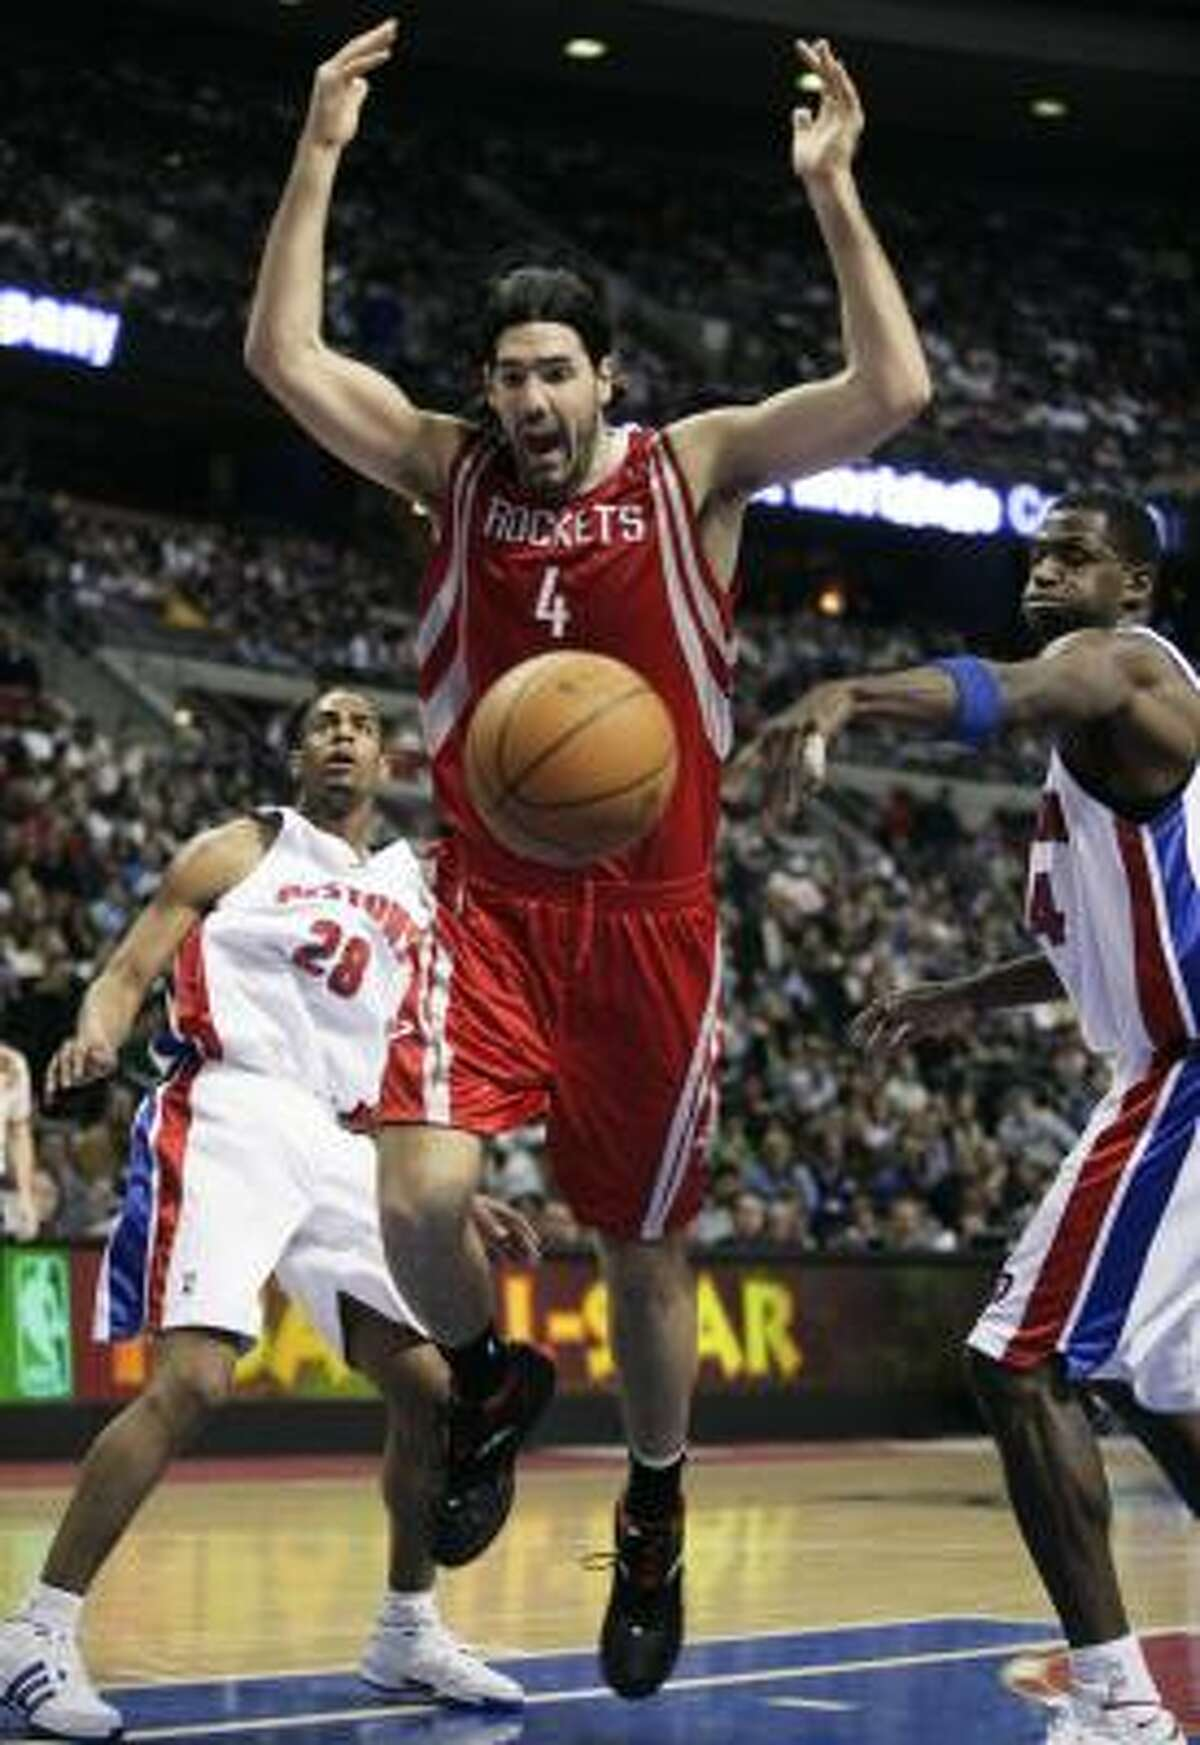 Luis Scola spins out of control while driving to the basket against Piston defenders Arron Afflalo, left, and Antonio McDyess in the first half.